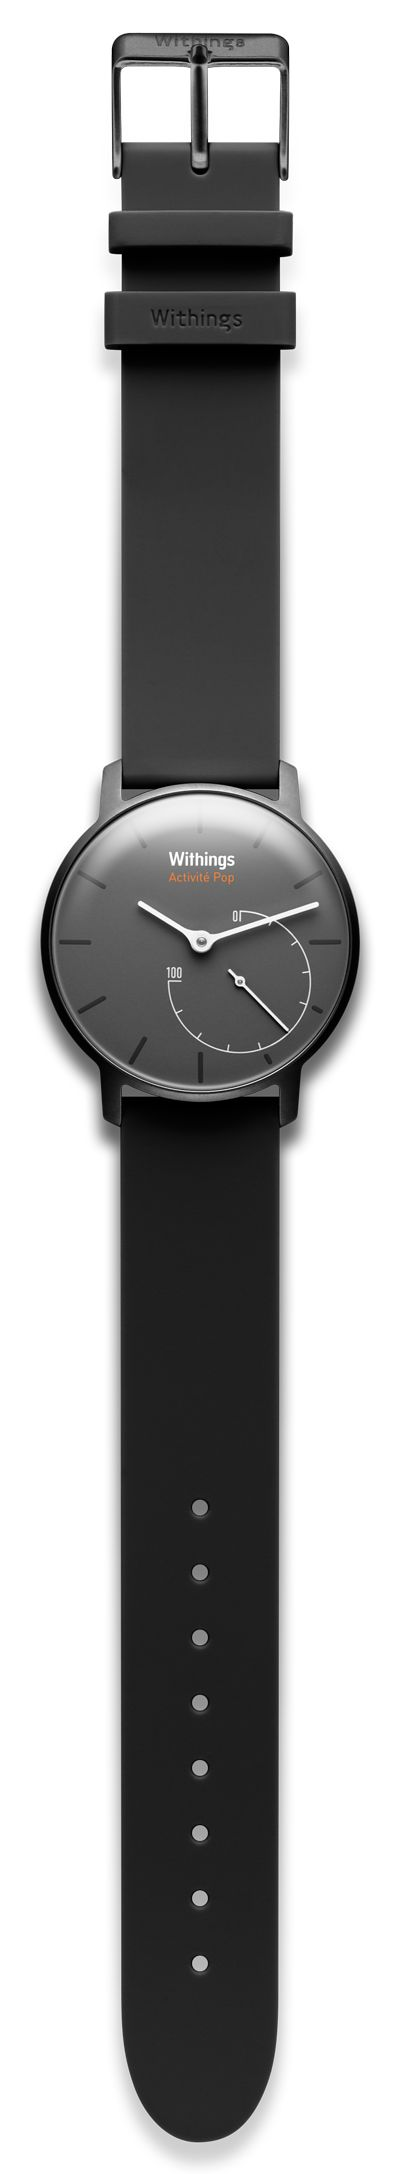 http://www.withings.com/us/en/products/activite-pop